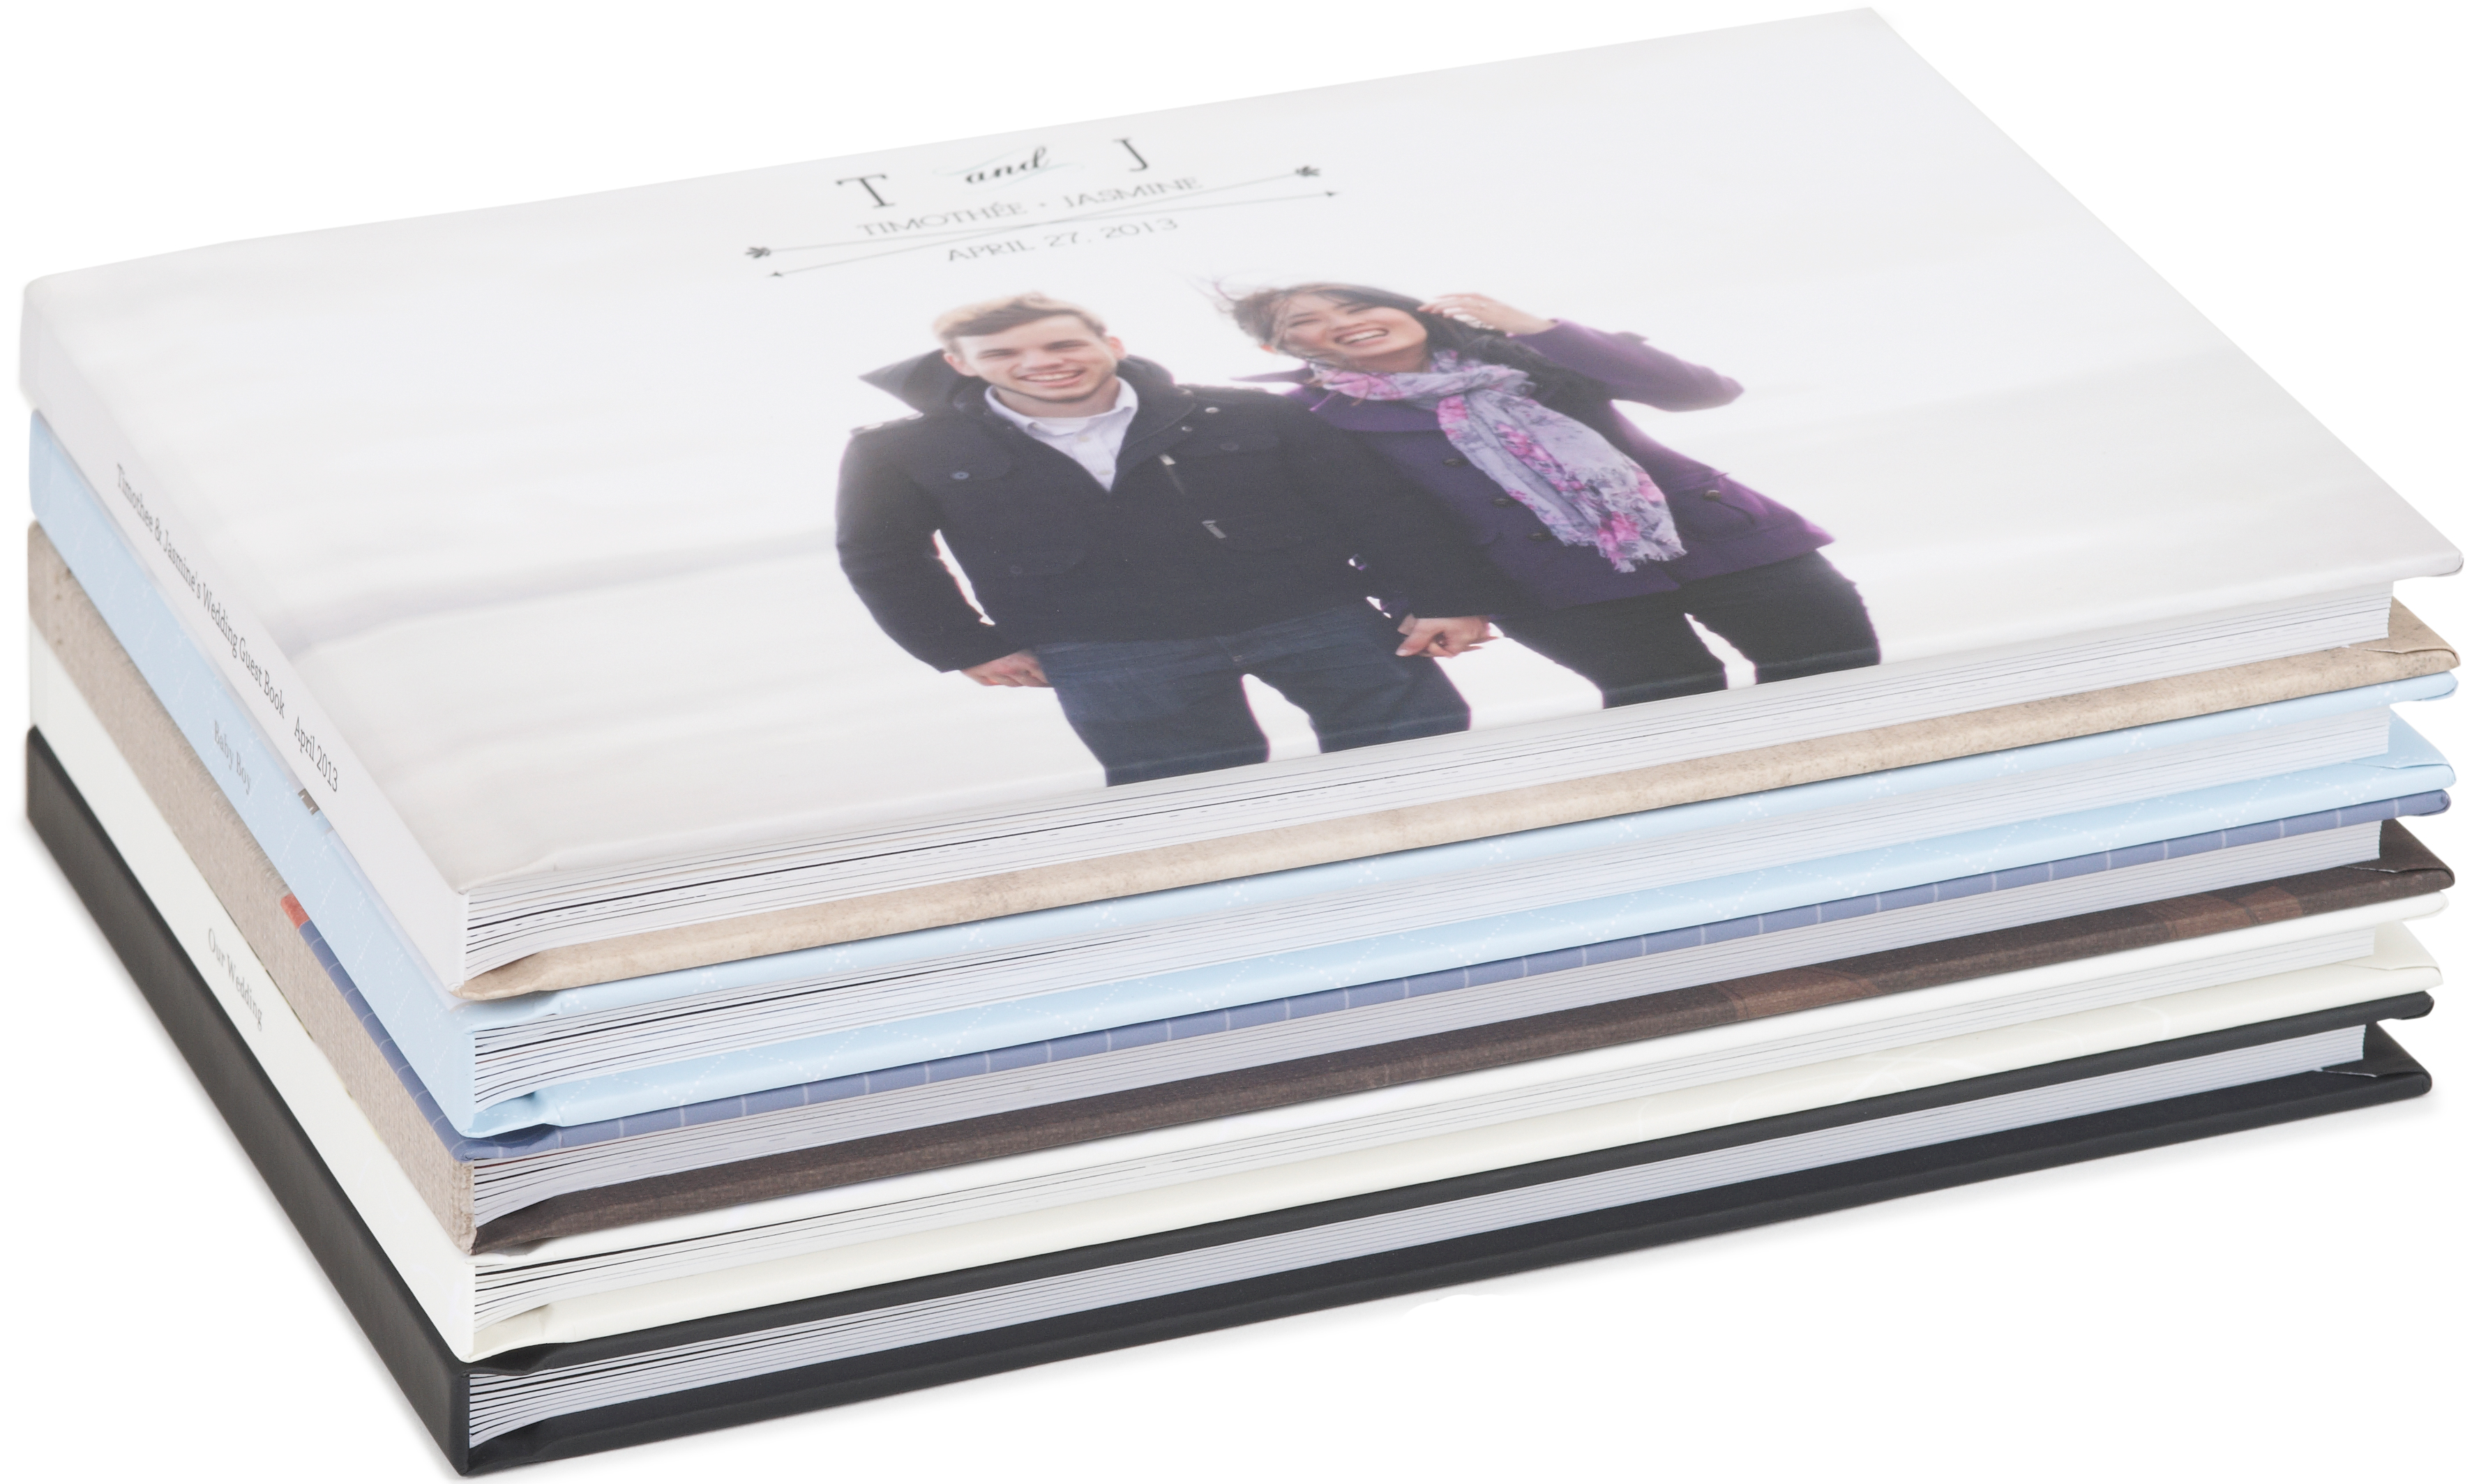 premium lay flat pages for hard cover photo books